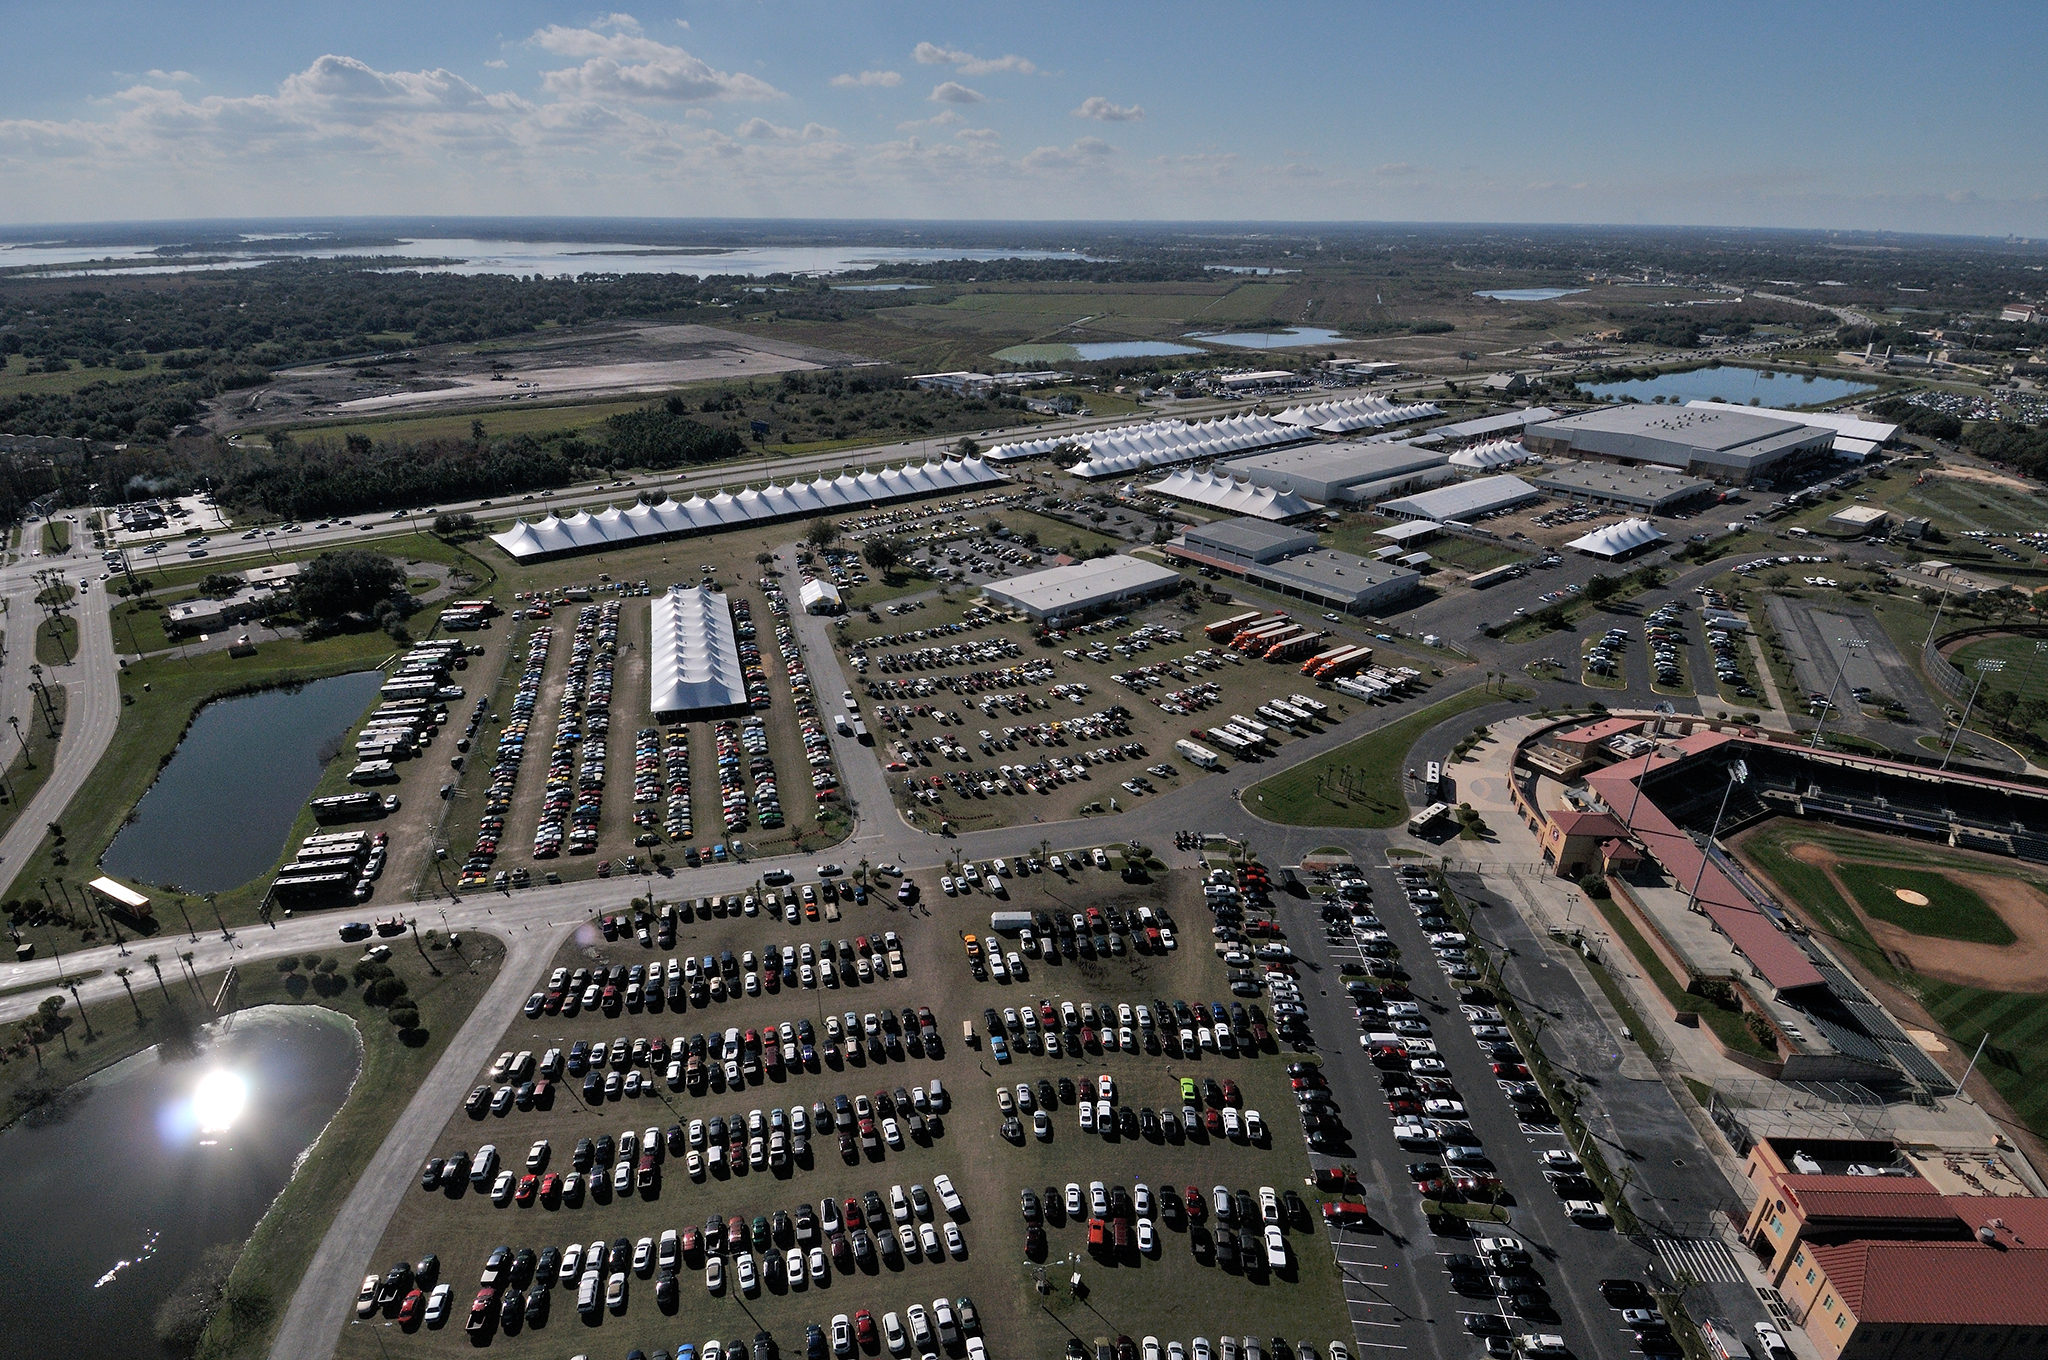 Mecum's Kissimmee auction is held each January. It's now grown to 3,000 vehicles and 10 full days.